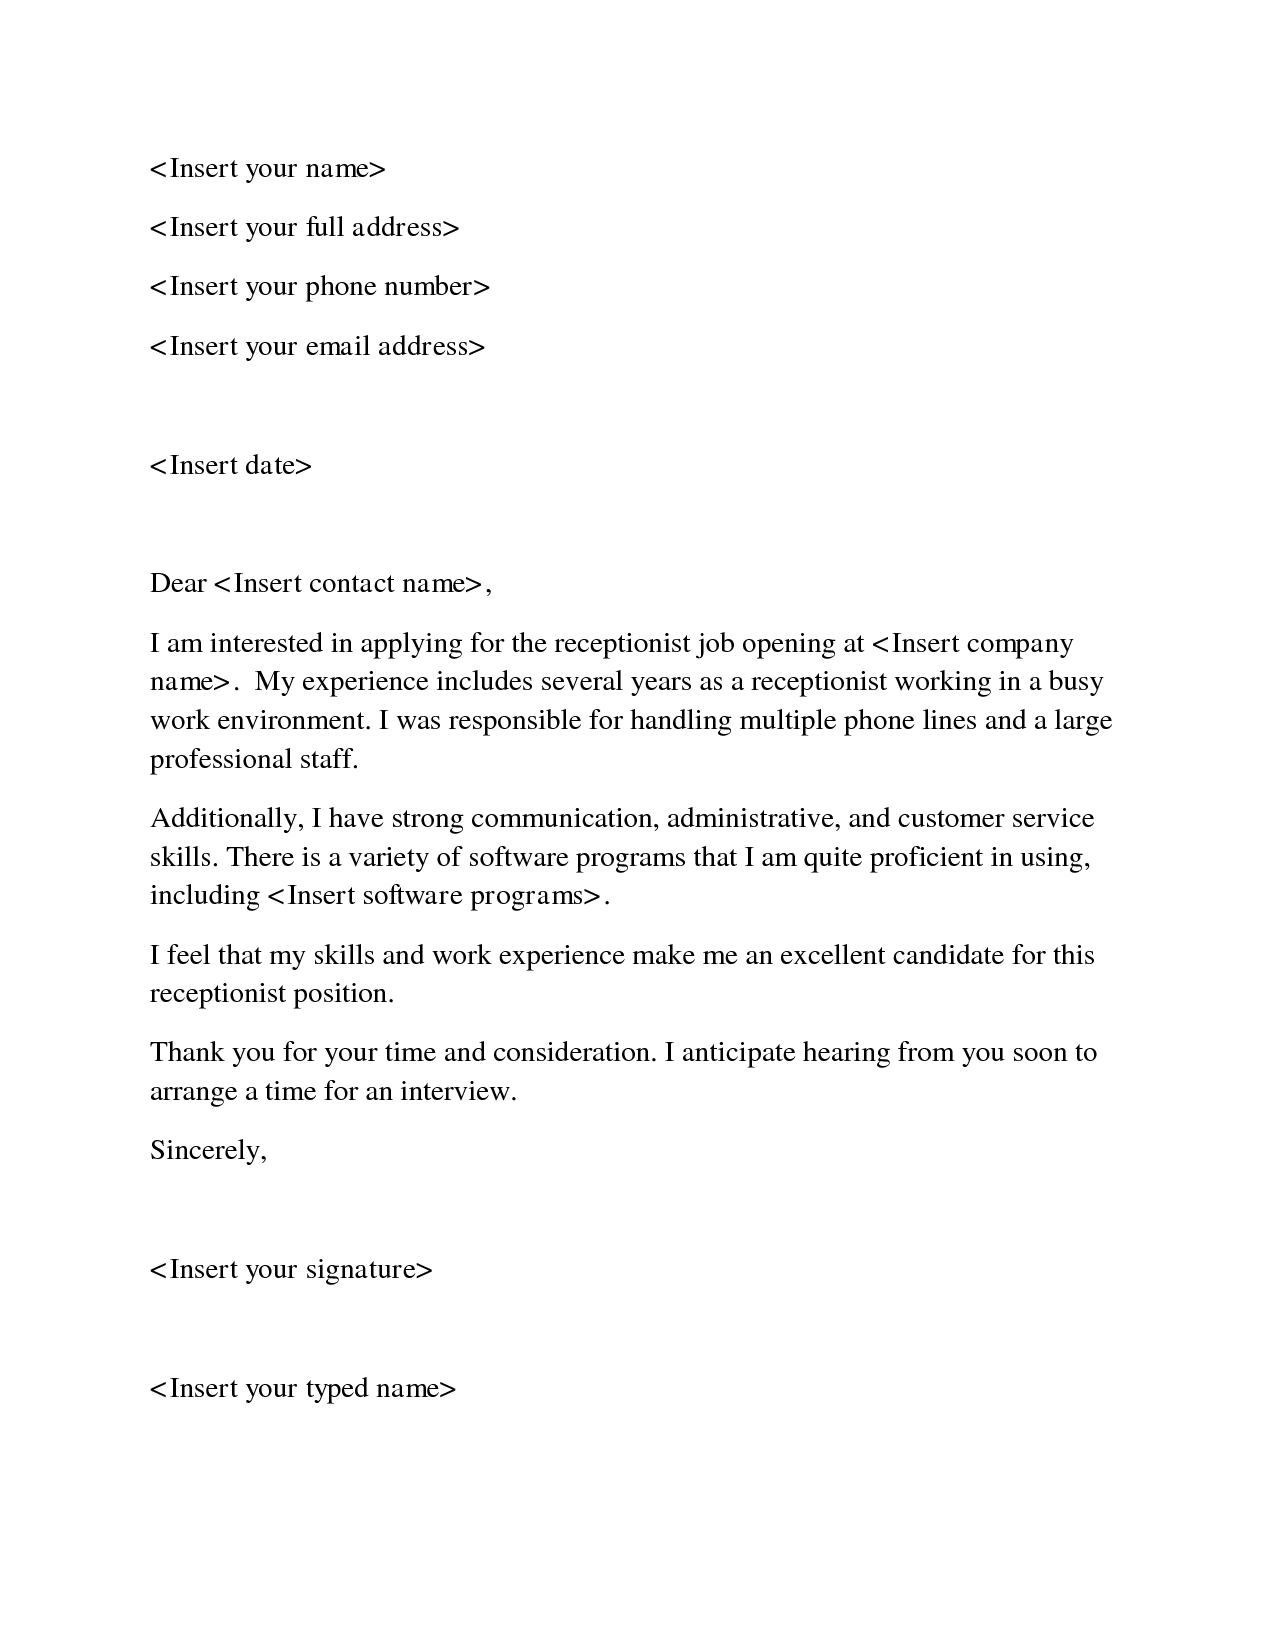 Cover Letter Medical Receptionist from mthomearts.com